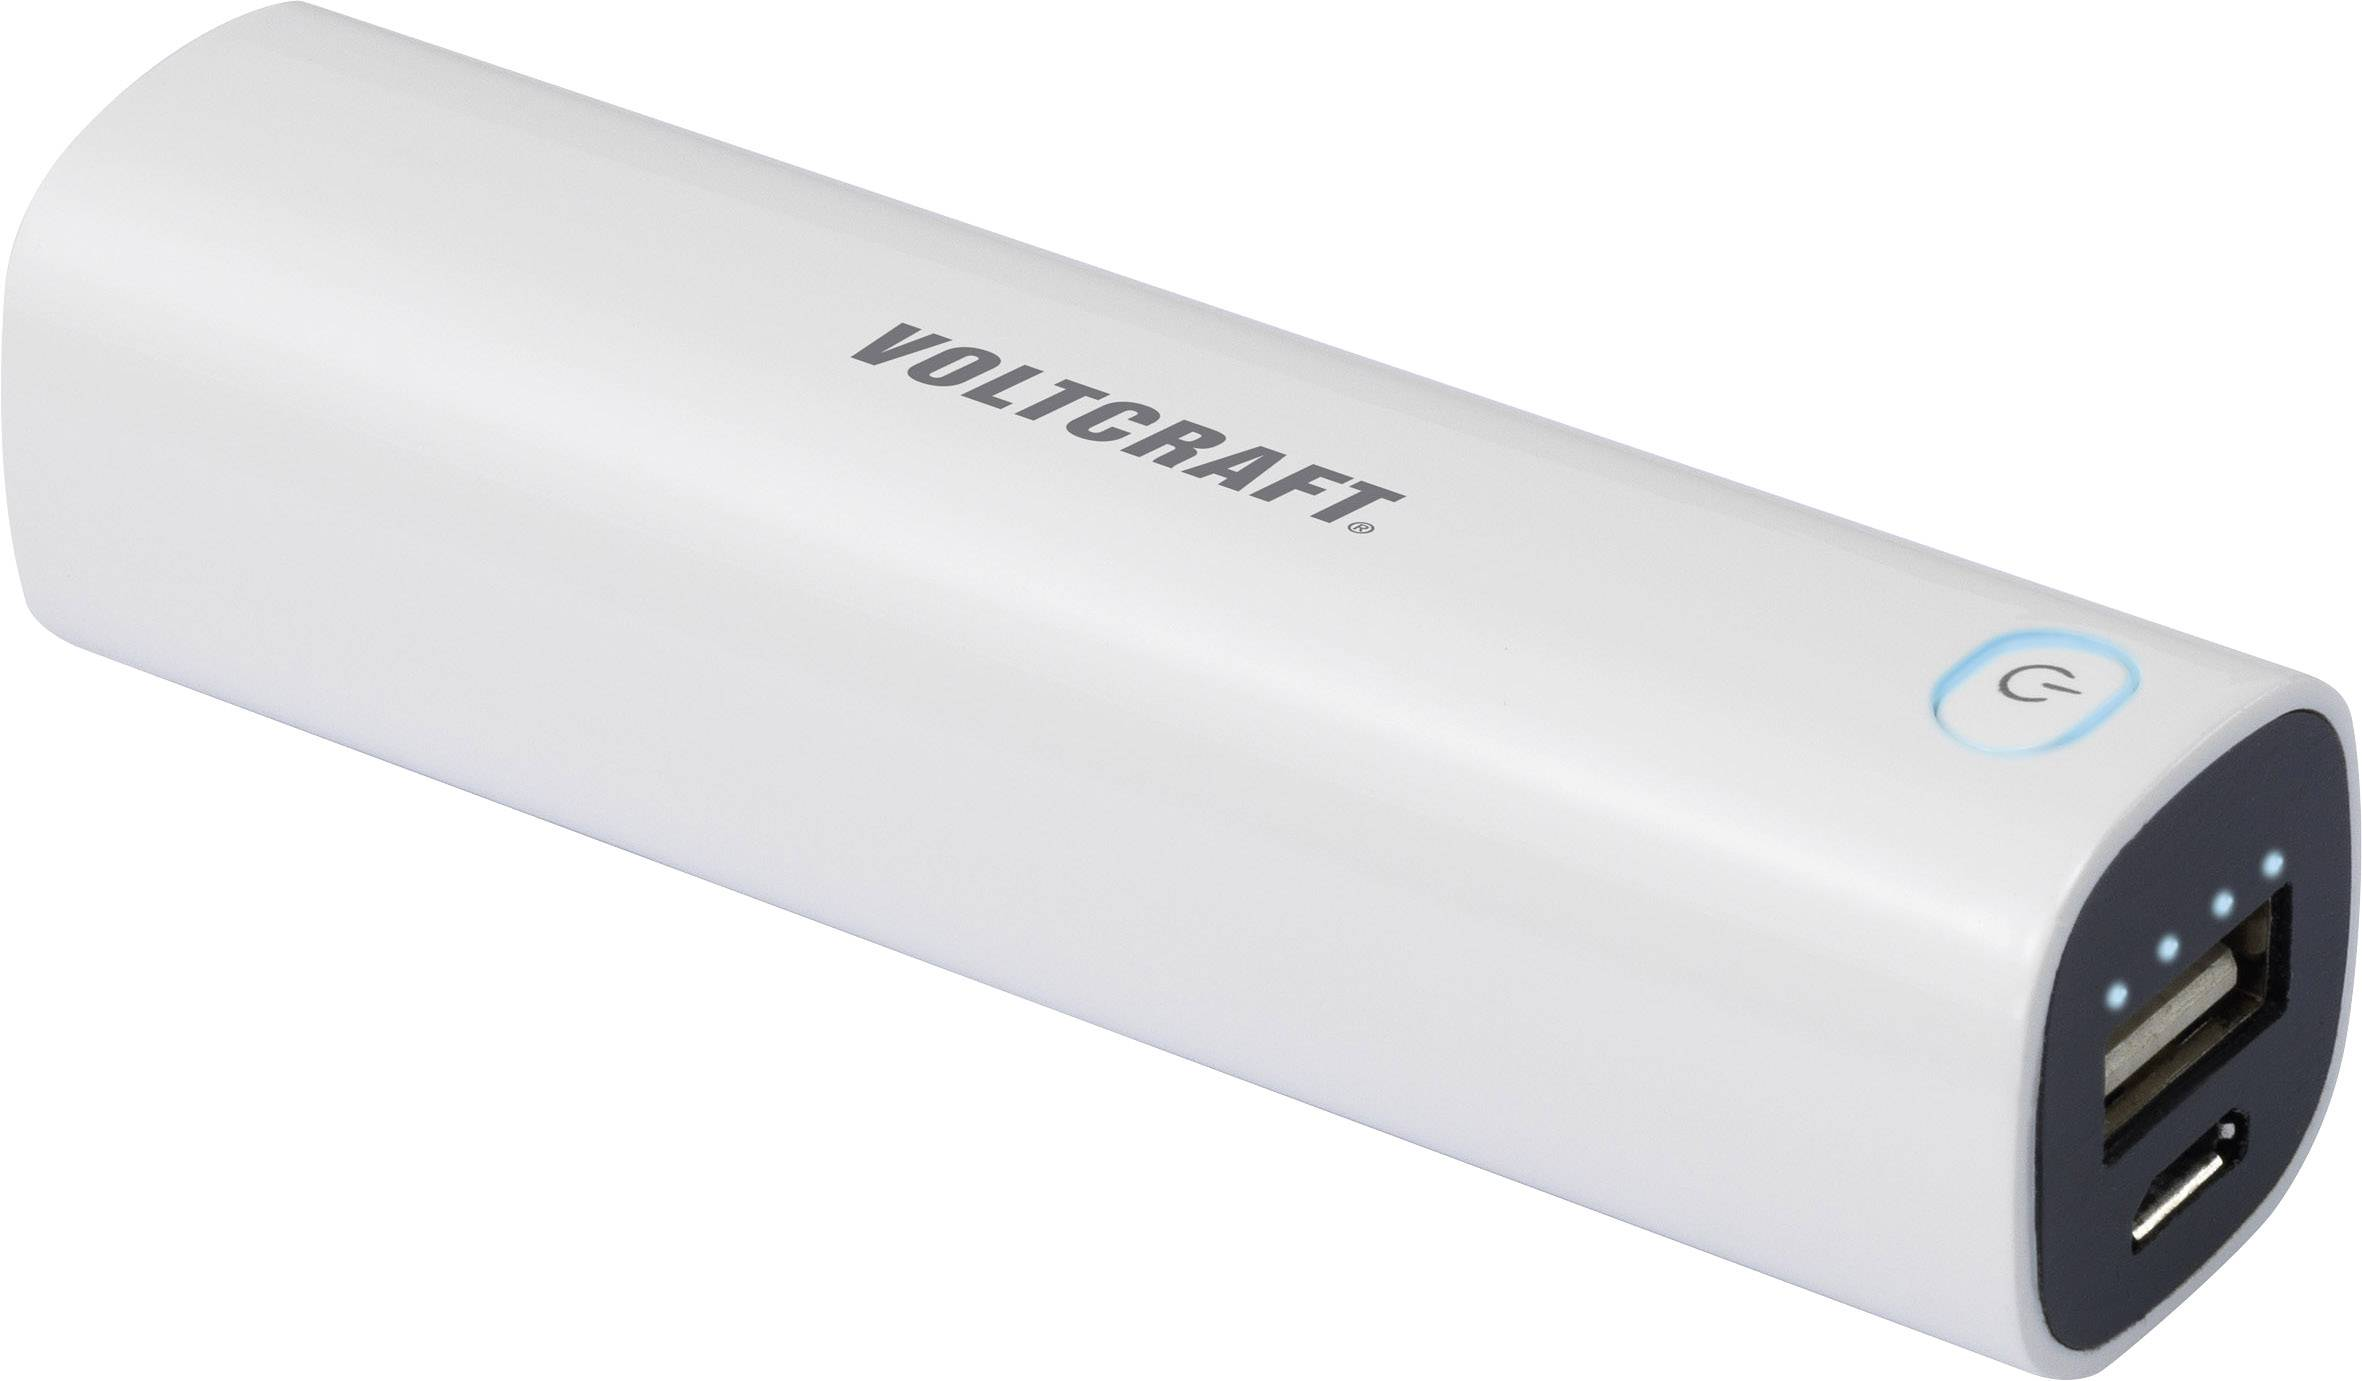 Powerbank Voltcraft PB-14, 2600 mAh